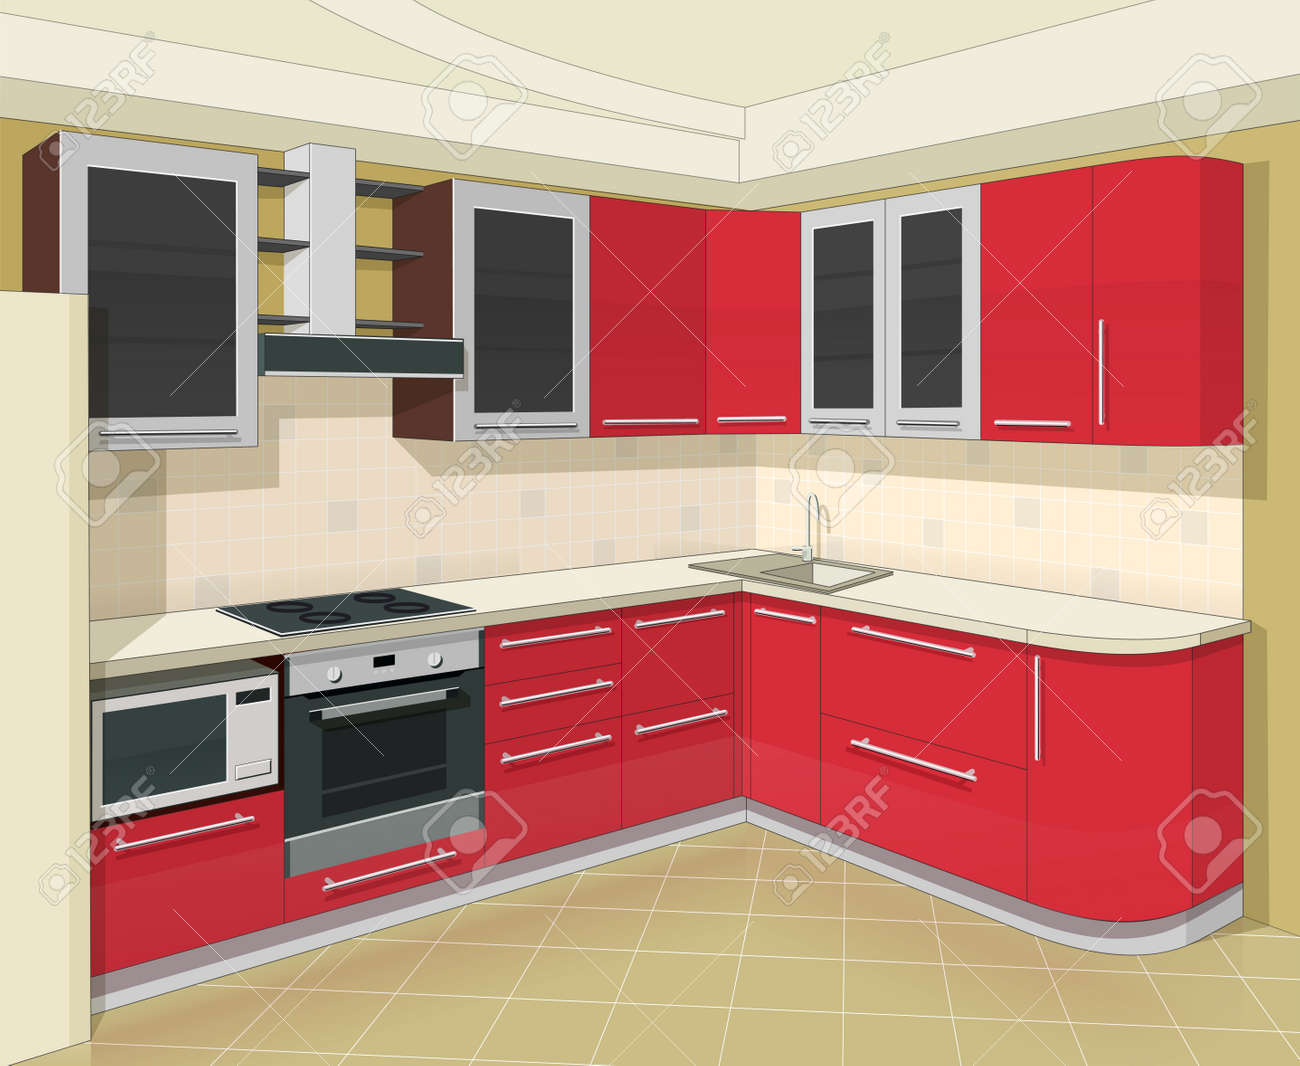 Kitchen Interior With Furniture Vector Illustration Royalty Free